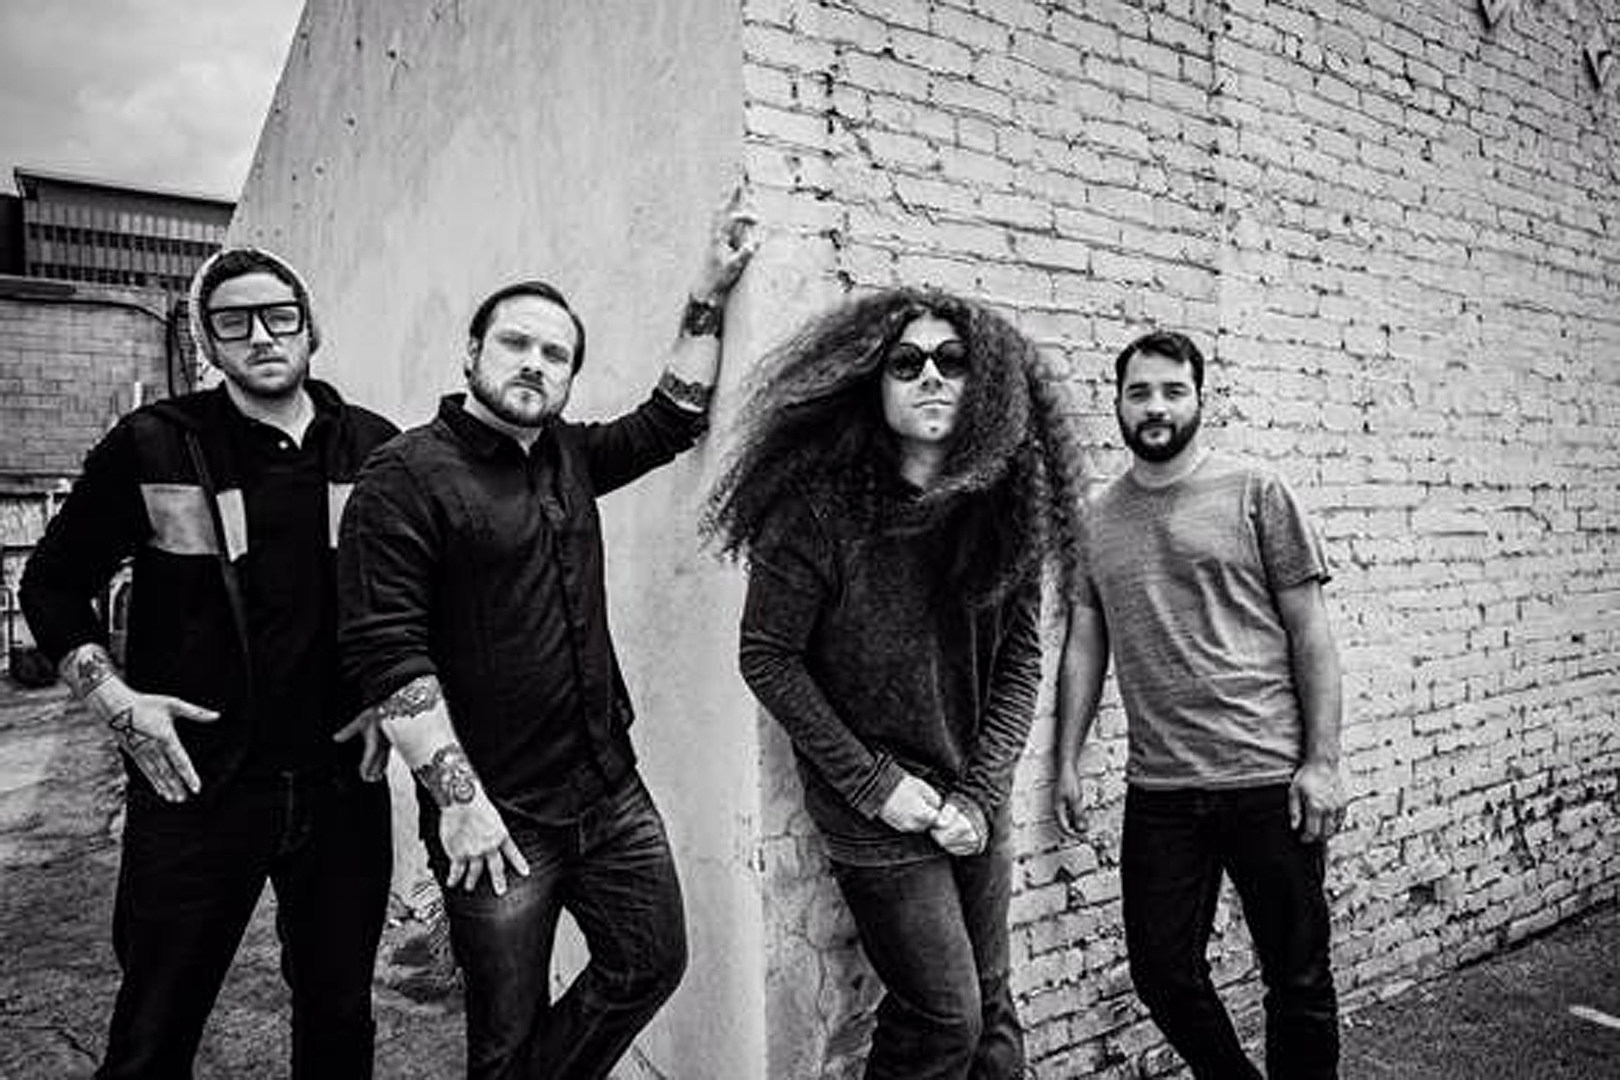 Coheed and Cambia to Launch 'S.S. Neverender' Cruise in 2020